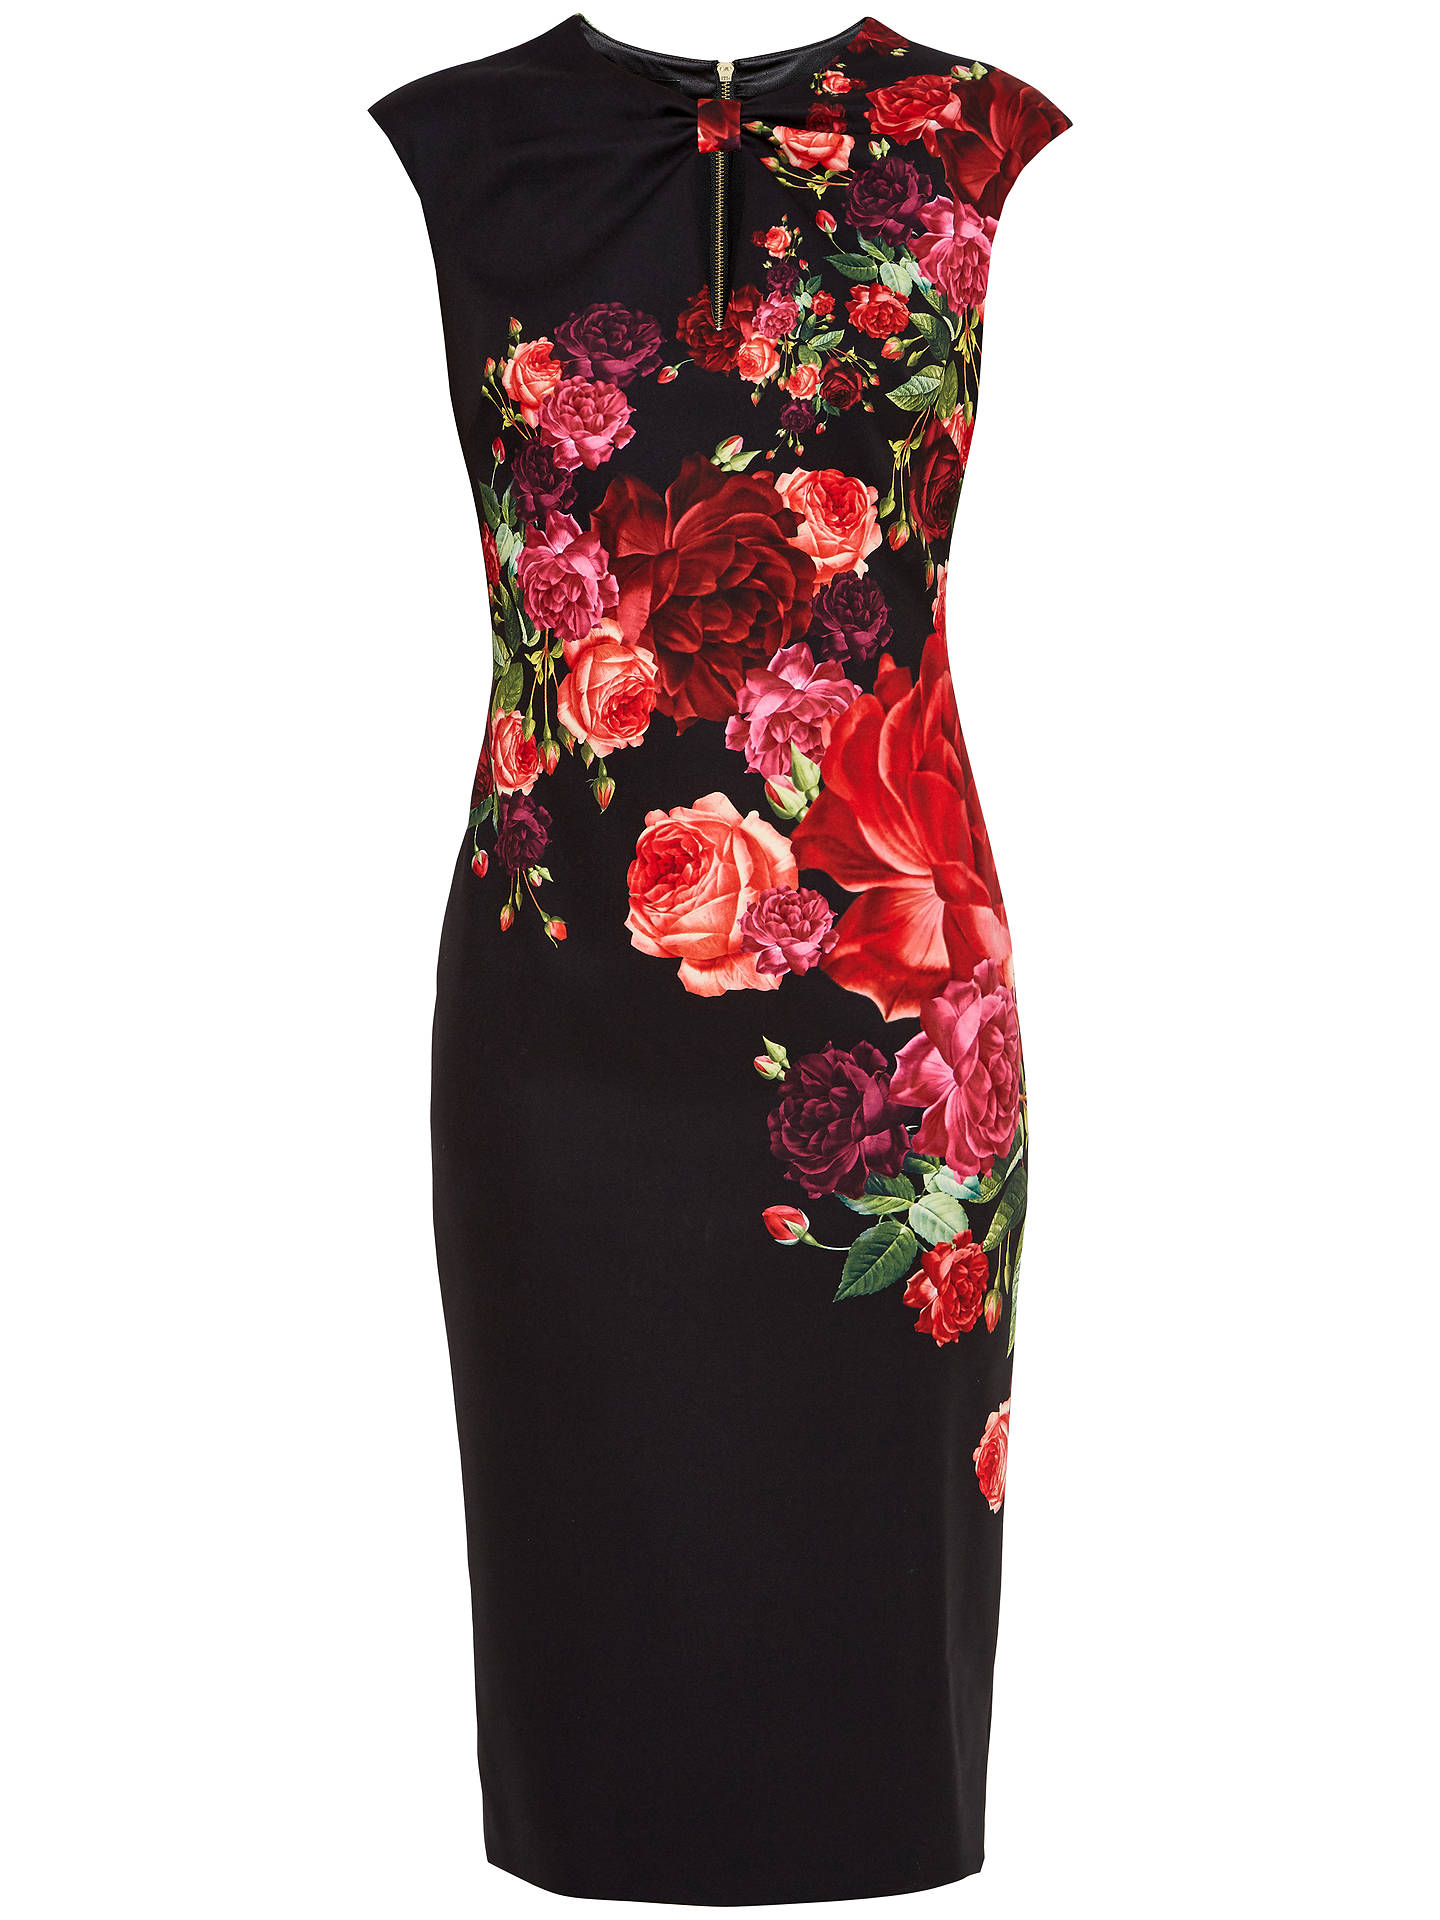 6fd4335e86f4a Buy Ted Baker Mirrie Juxtapose Rose Knot Dress